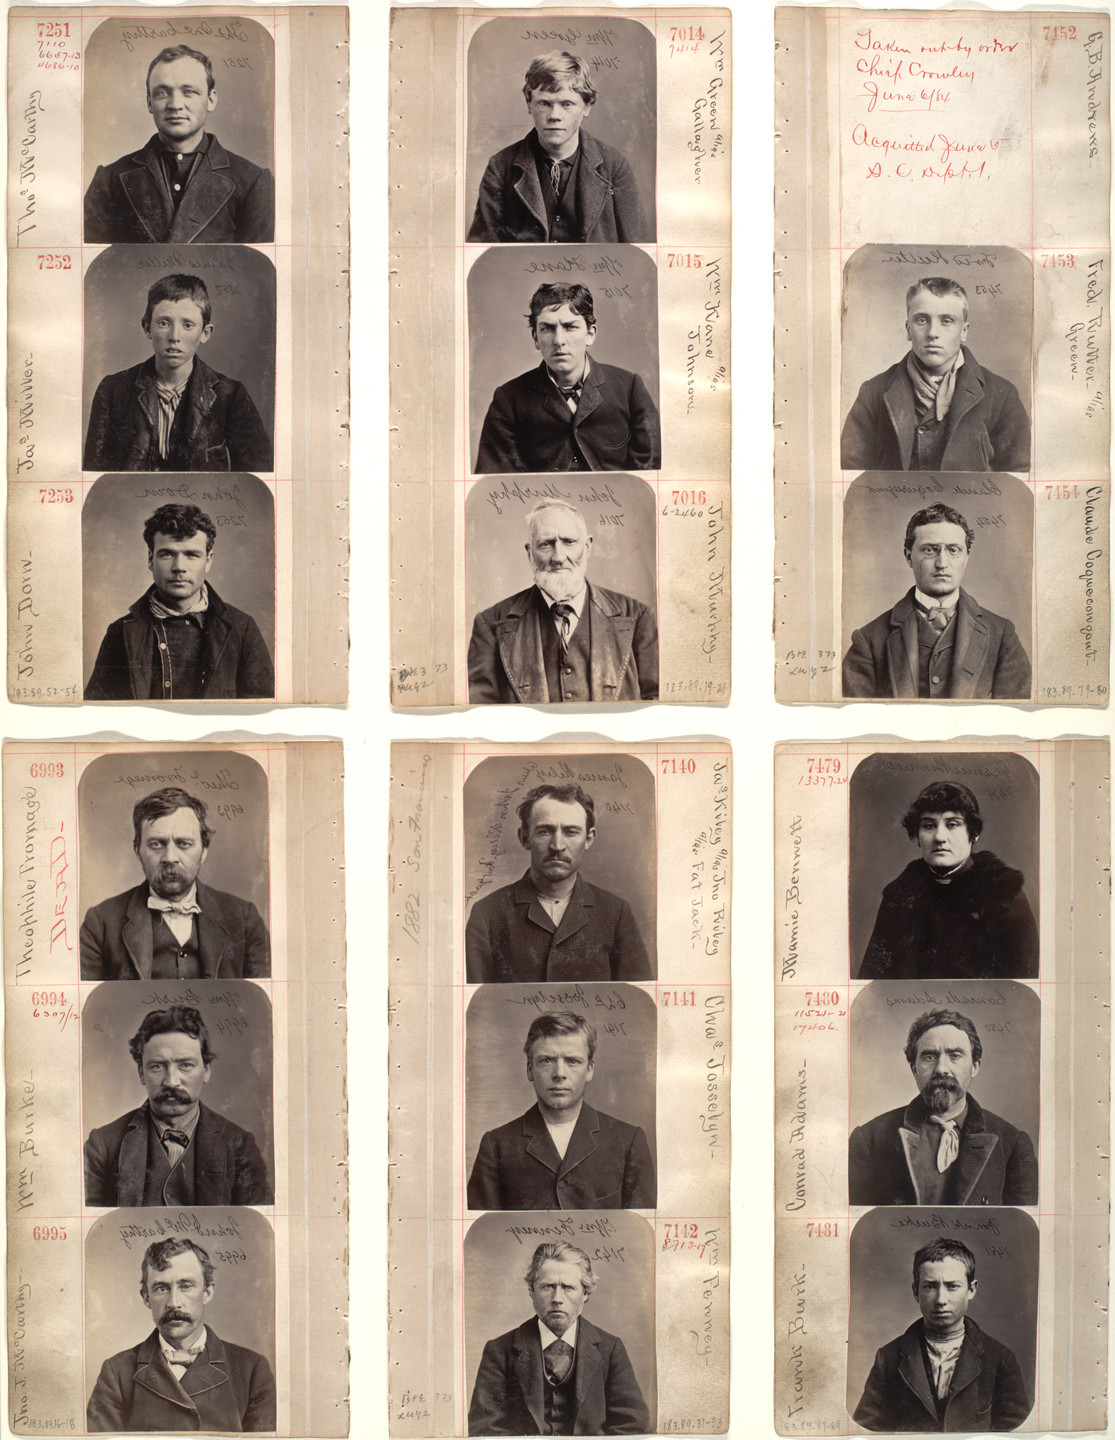 Unknown photographer. Untitled (Page from an album of mugshots). 1870s-80s